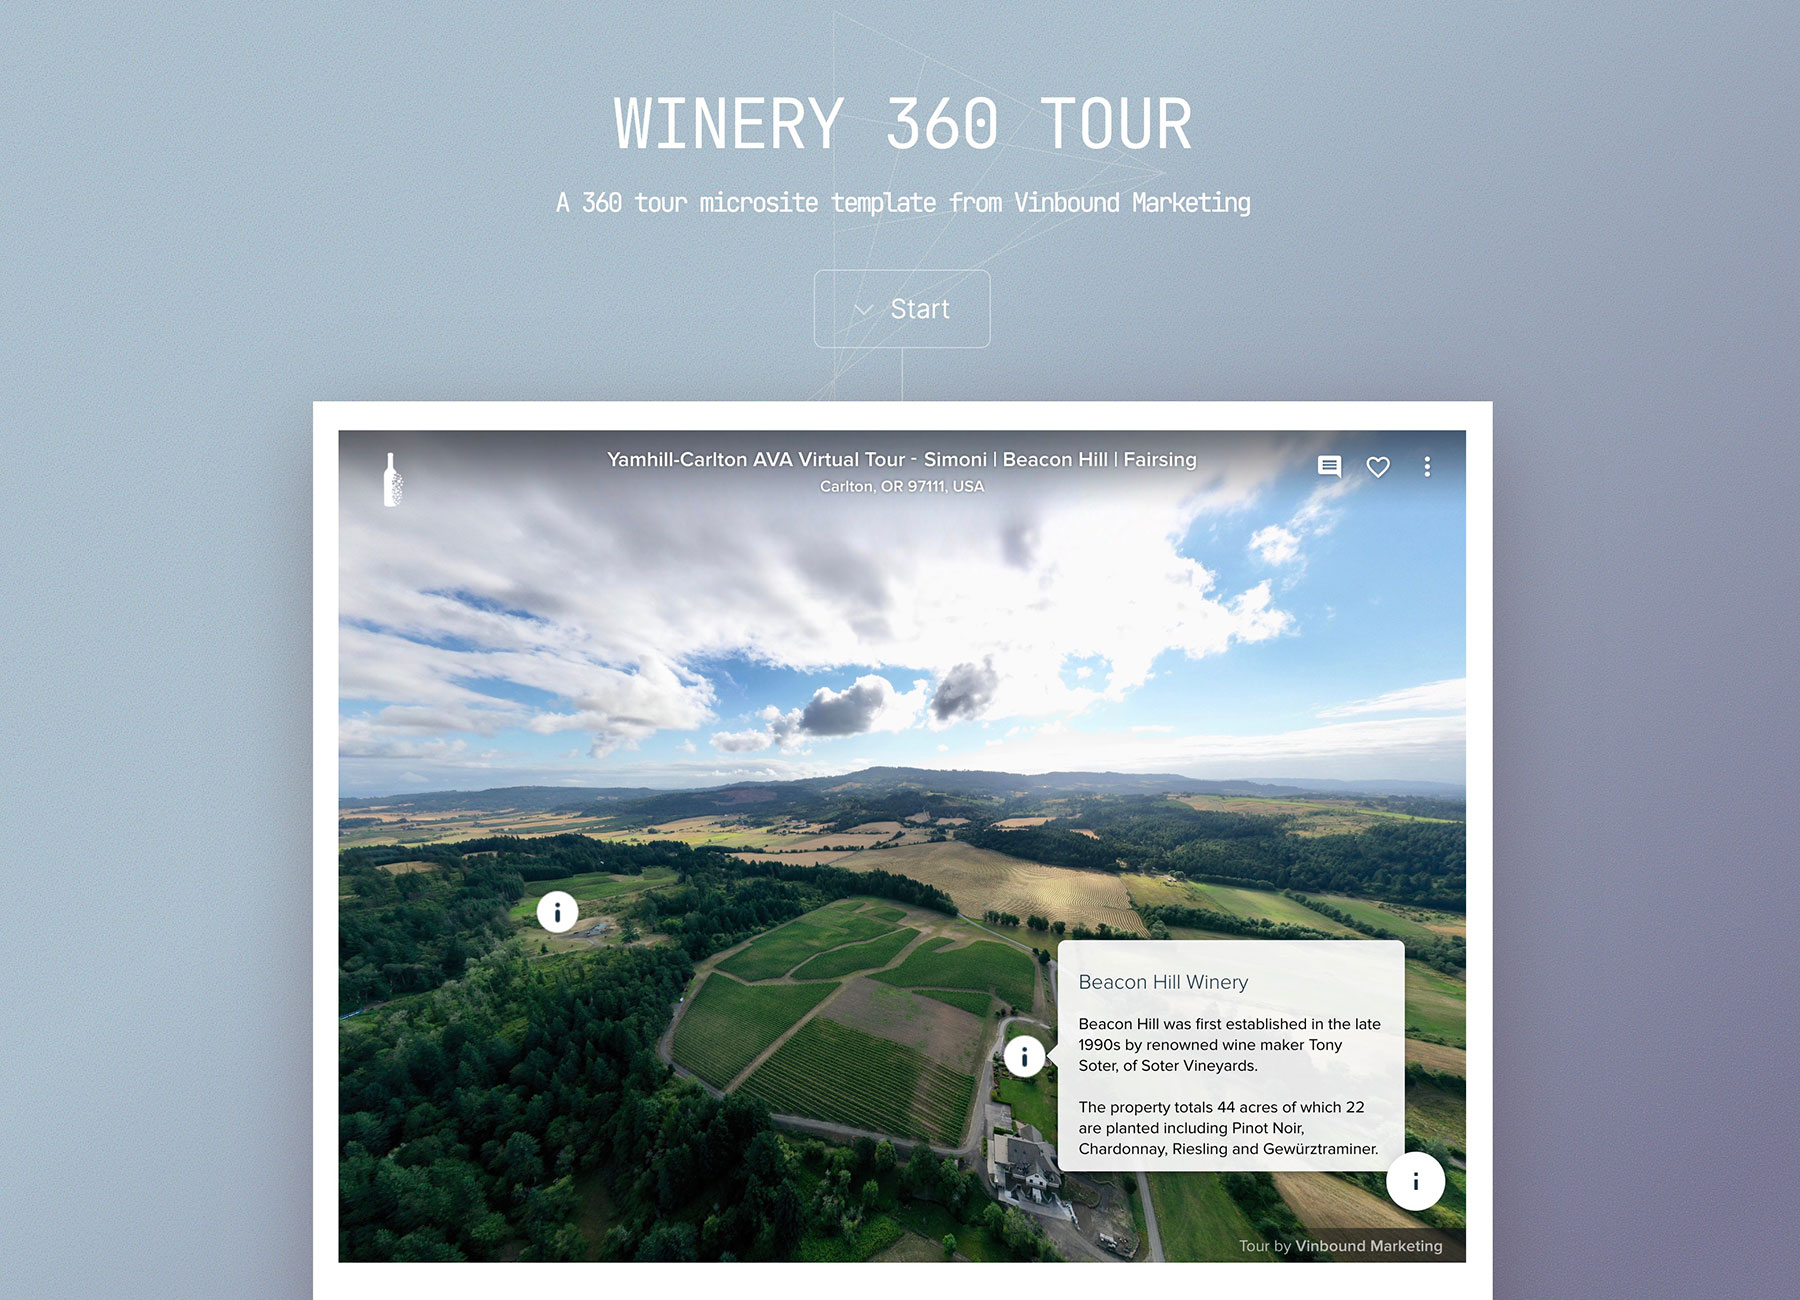 Winery 360 Tour. A 360 tour microsite template from Vinbound Marketing.